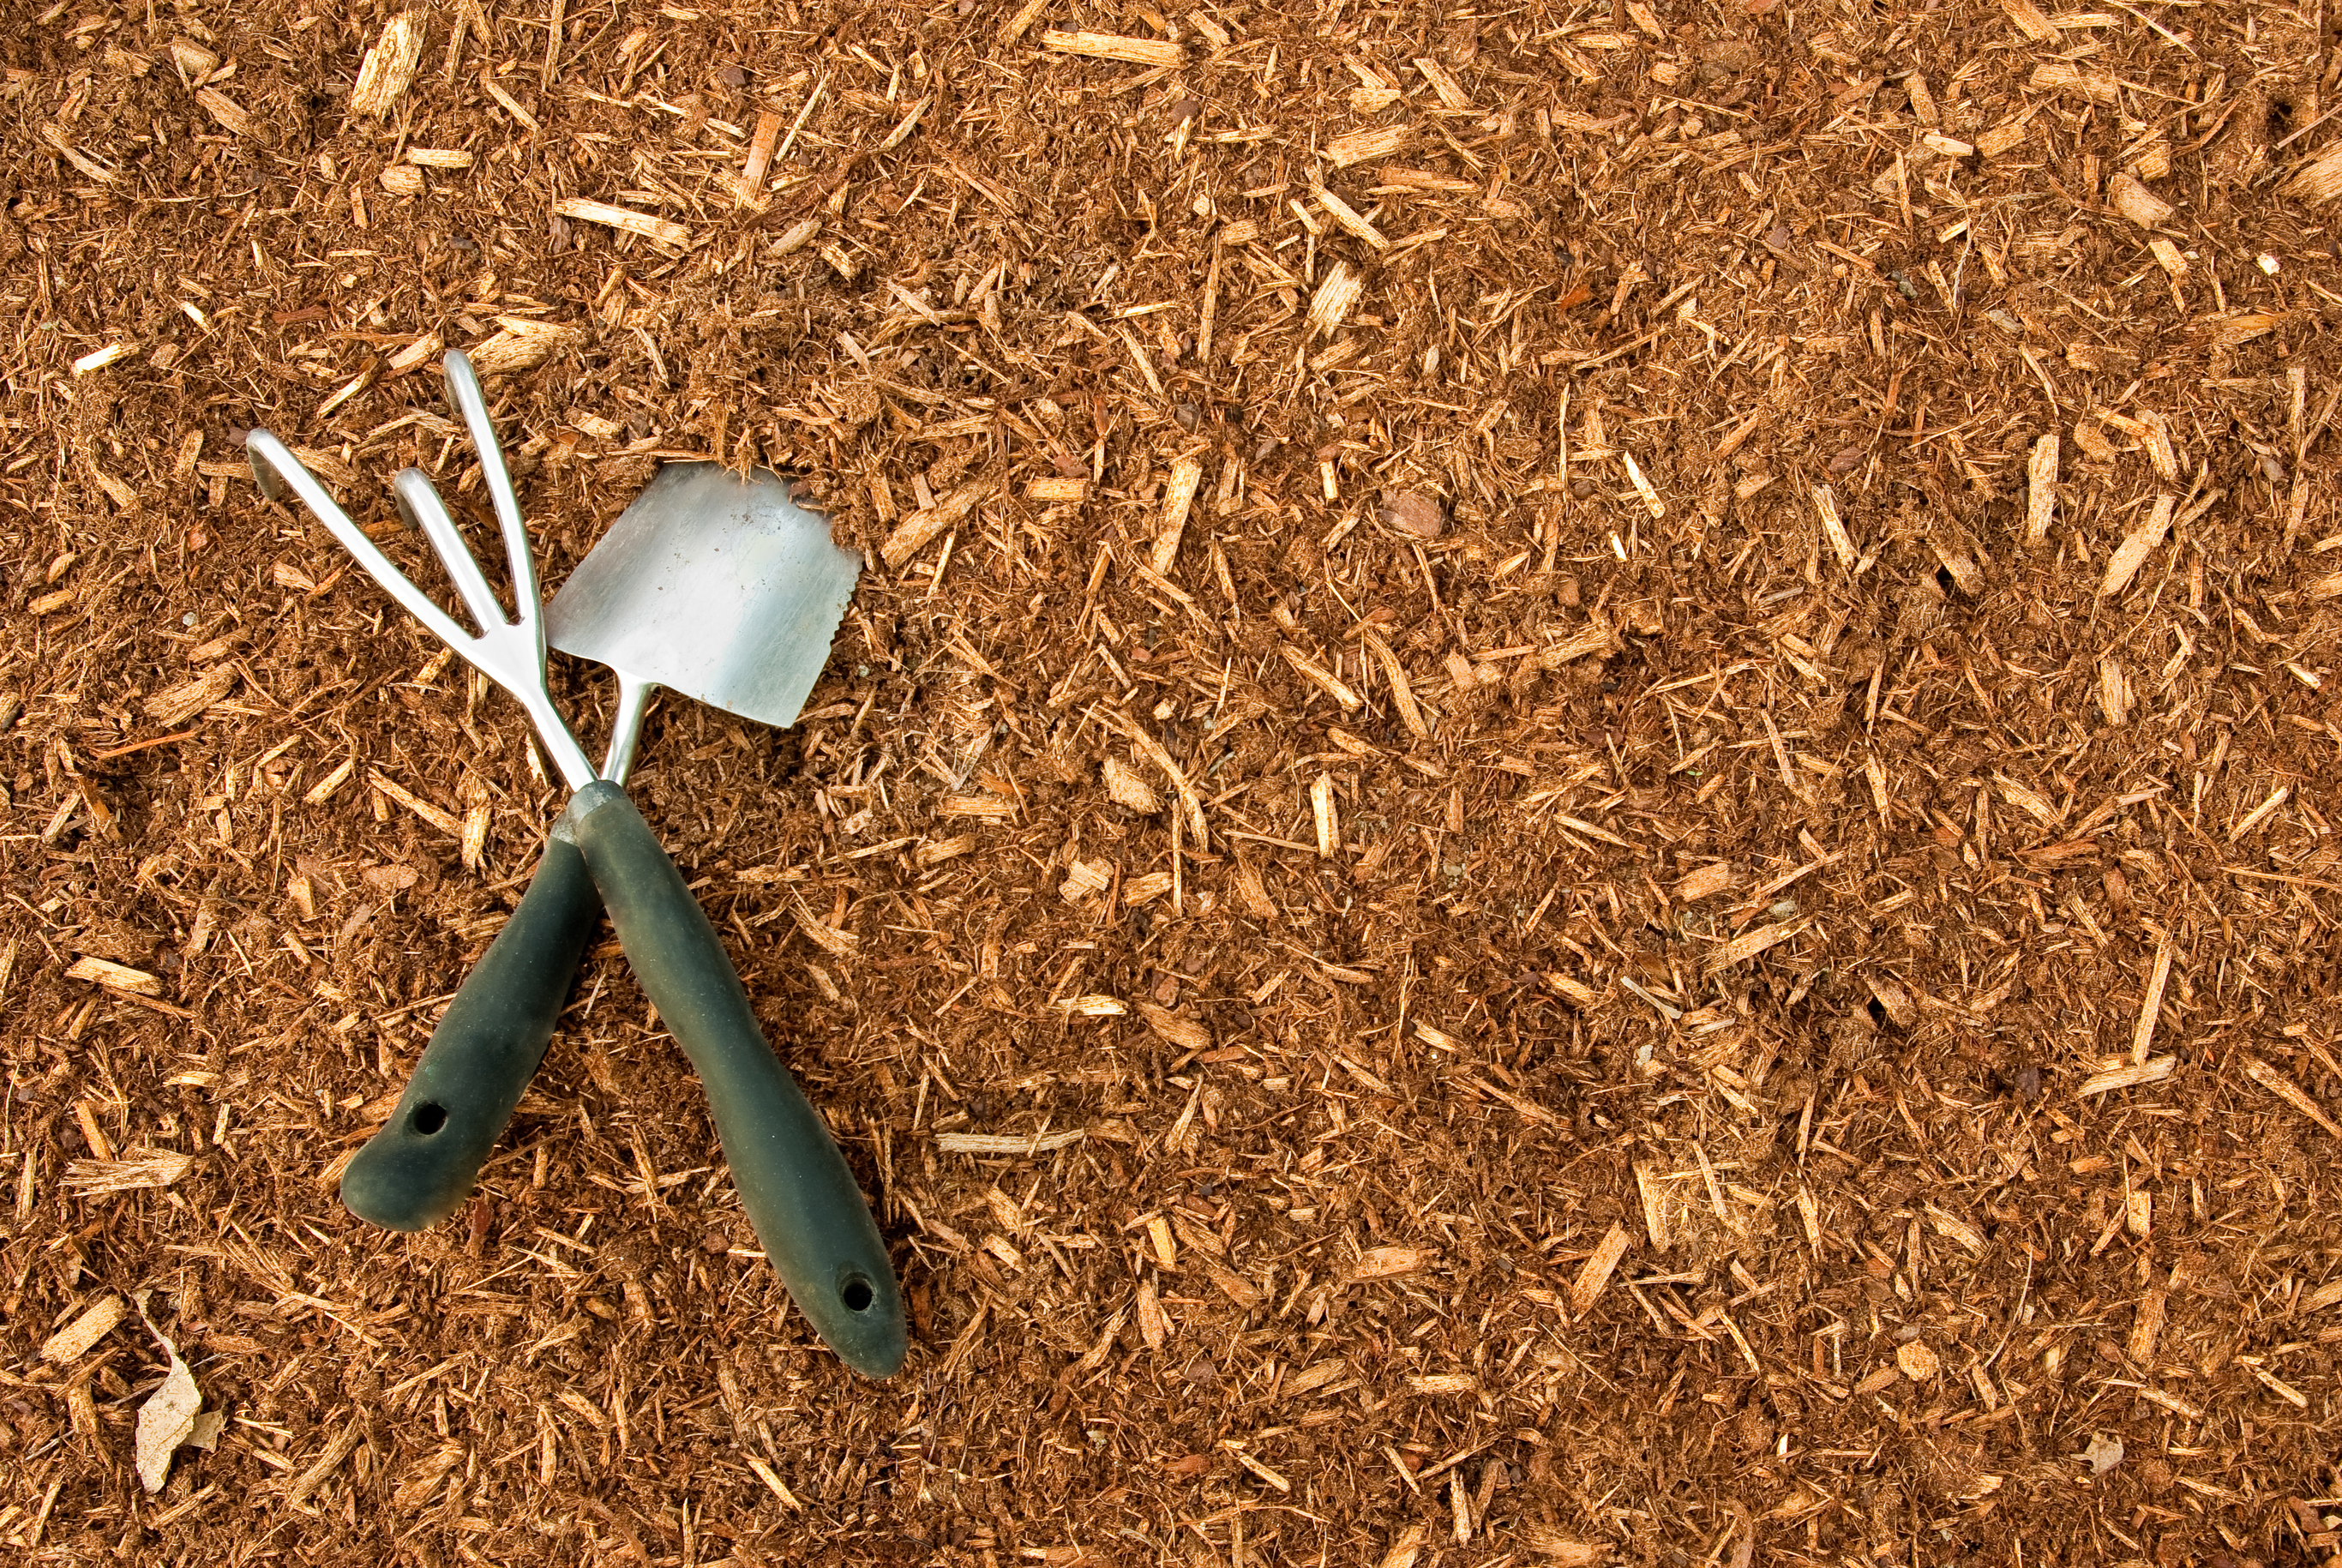 Wood chips with a rake and shovel